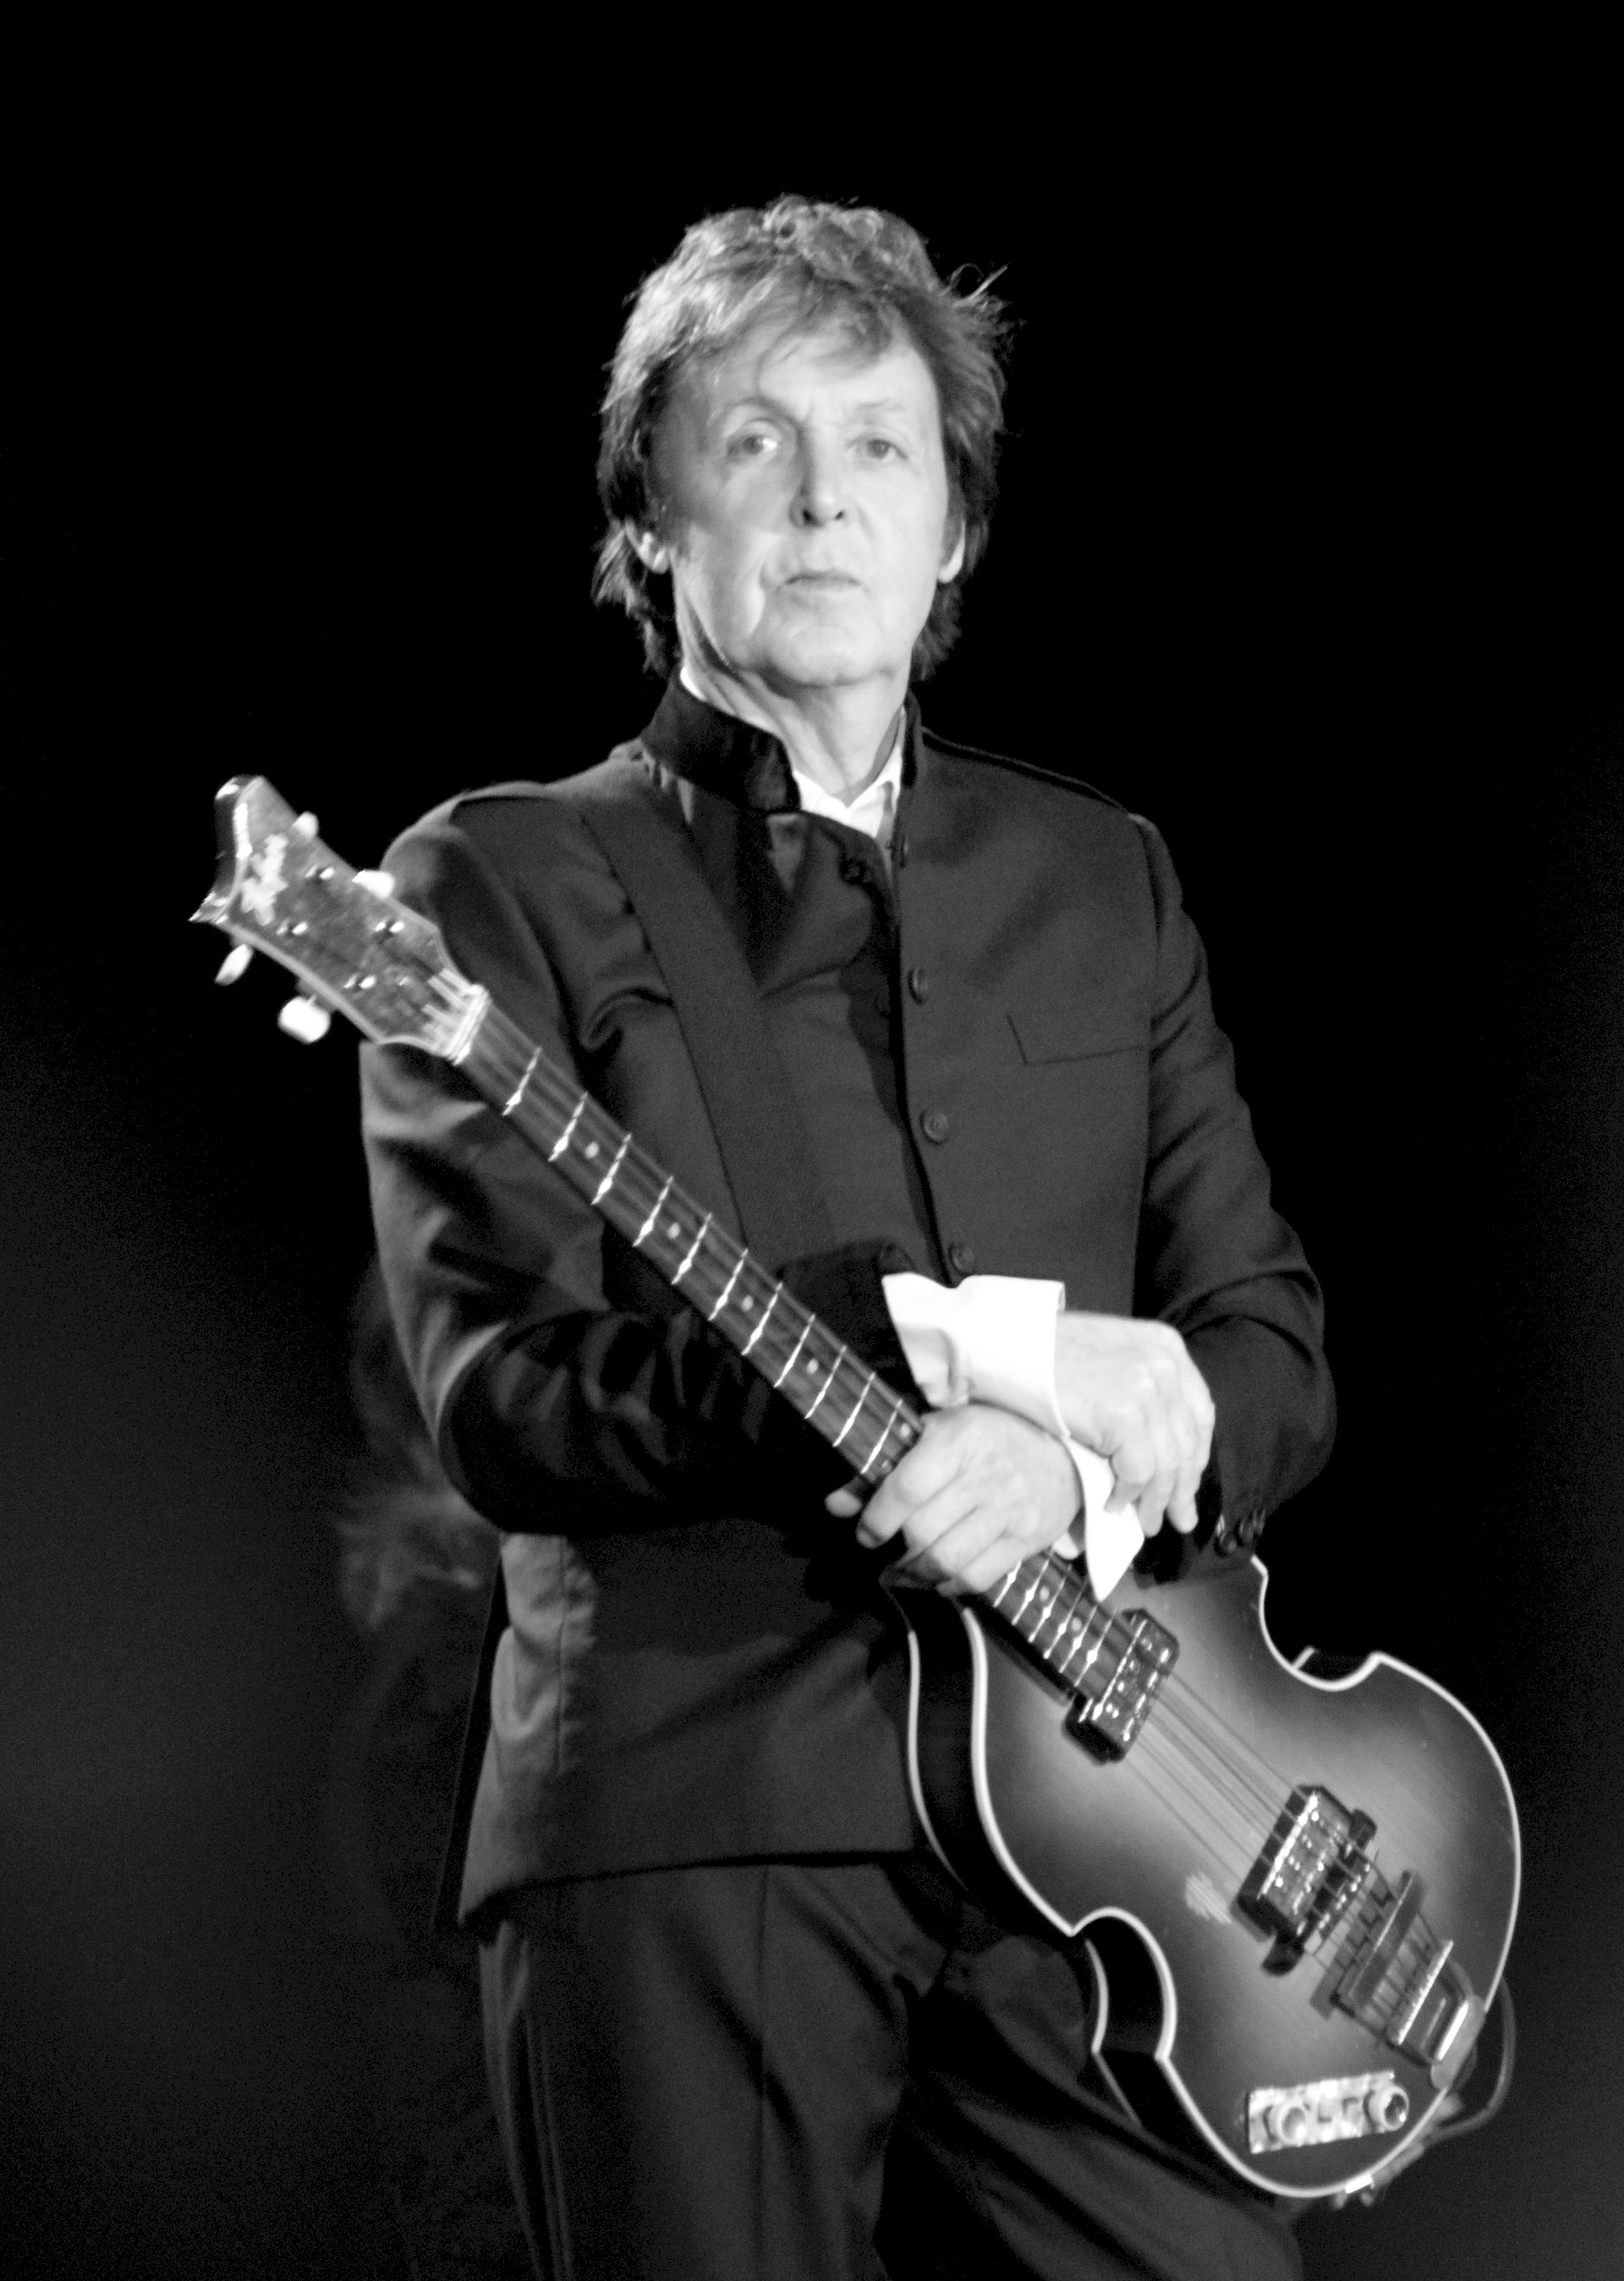 Photo of Paul McCartney: British musician, former member of the Beatles